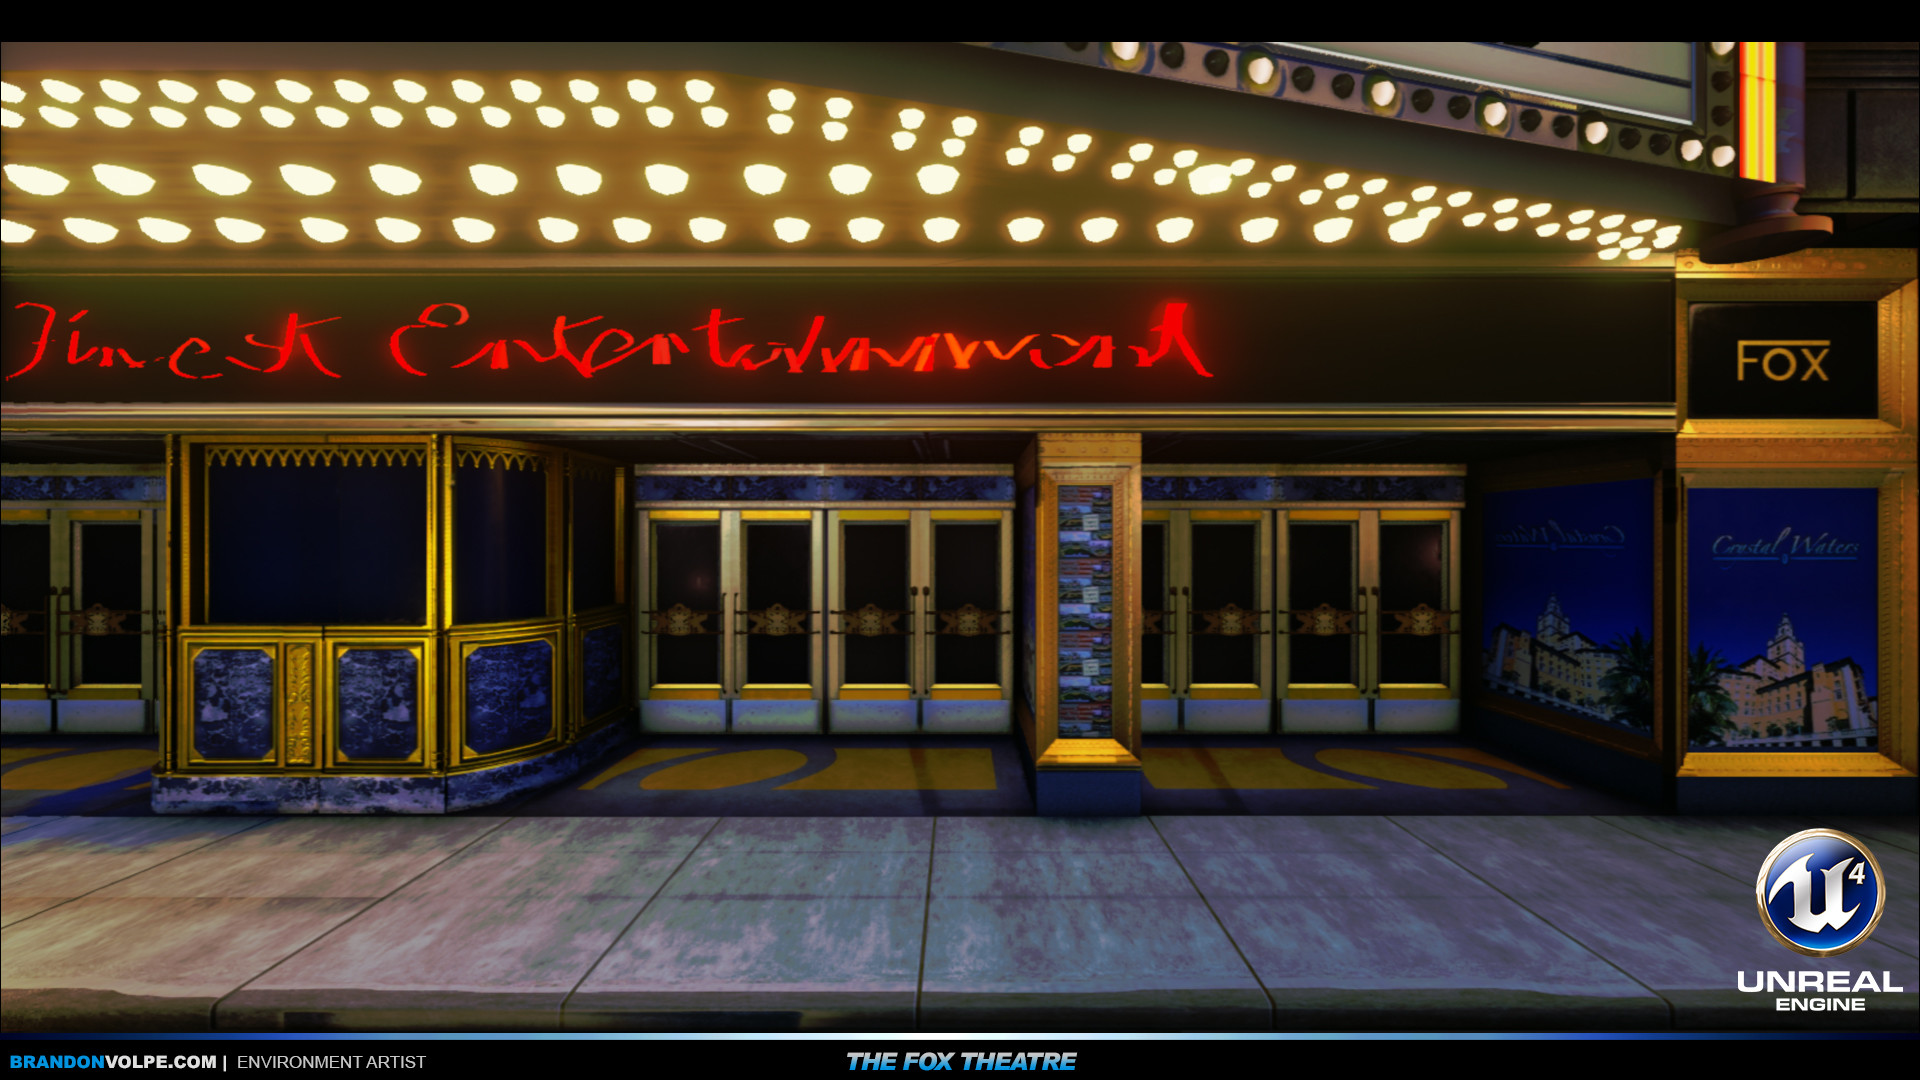 Brandon volpe foxtheatre wallpaper 021